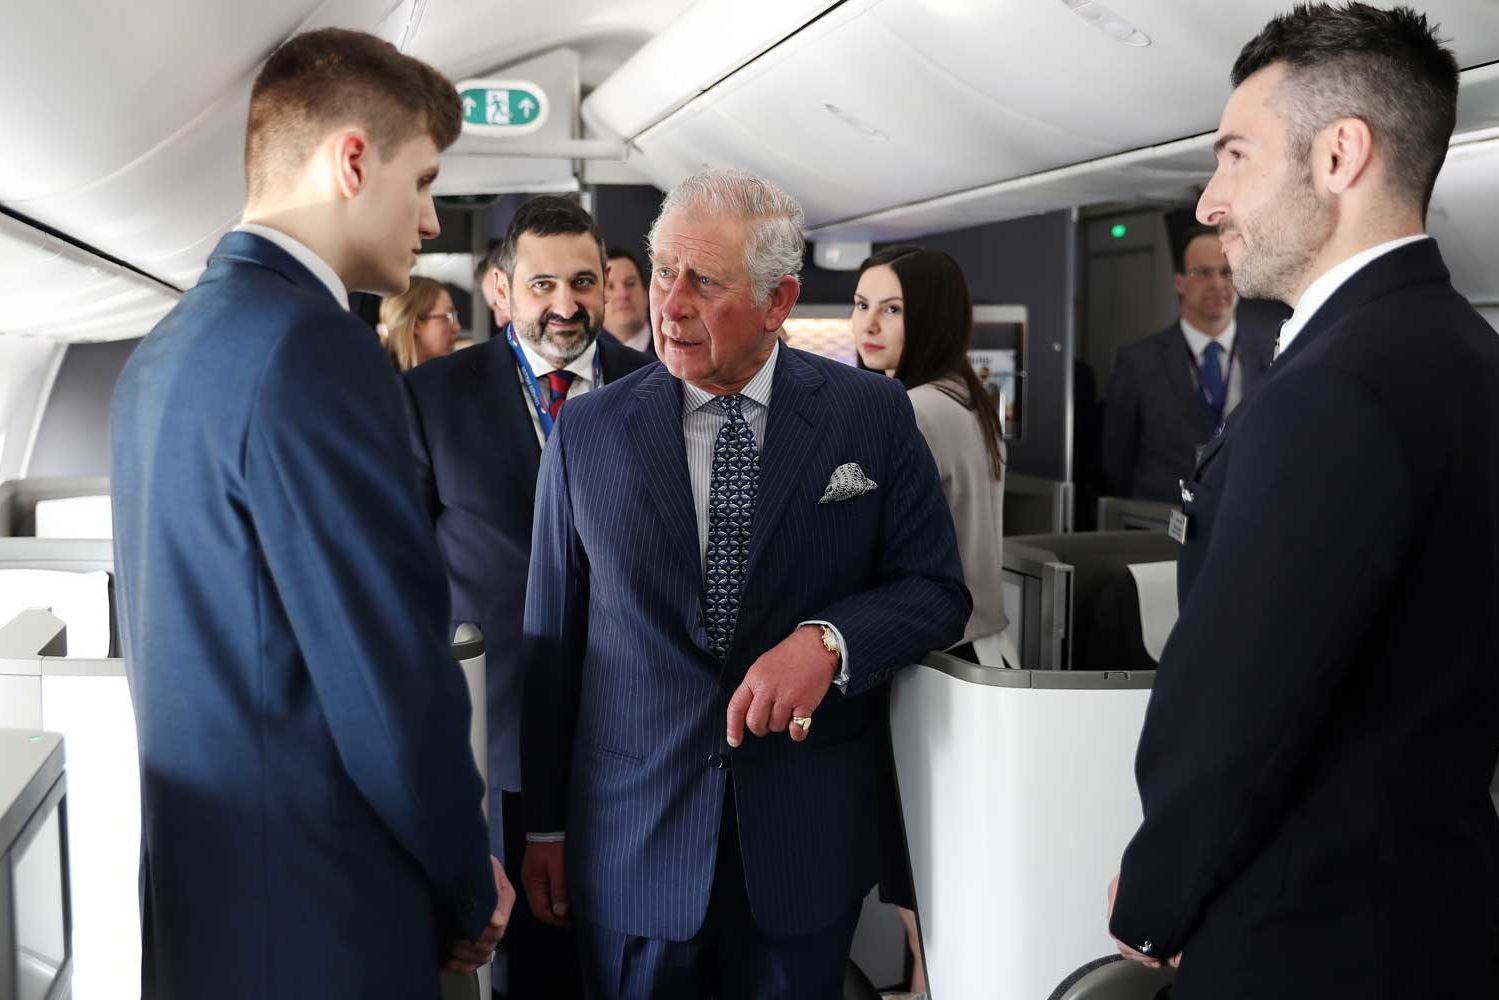 New Book Claims Prince Charles Won't Travel Without His Own Toilet Seat and a Martini